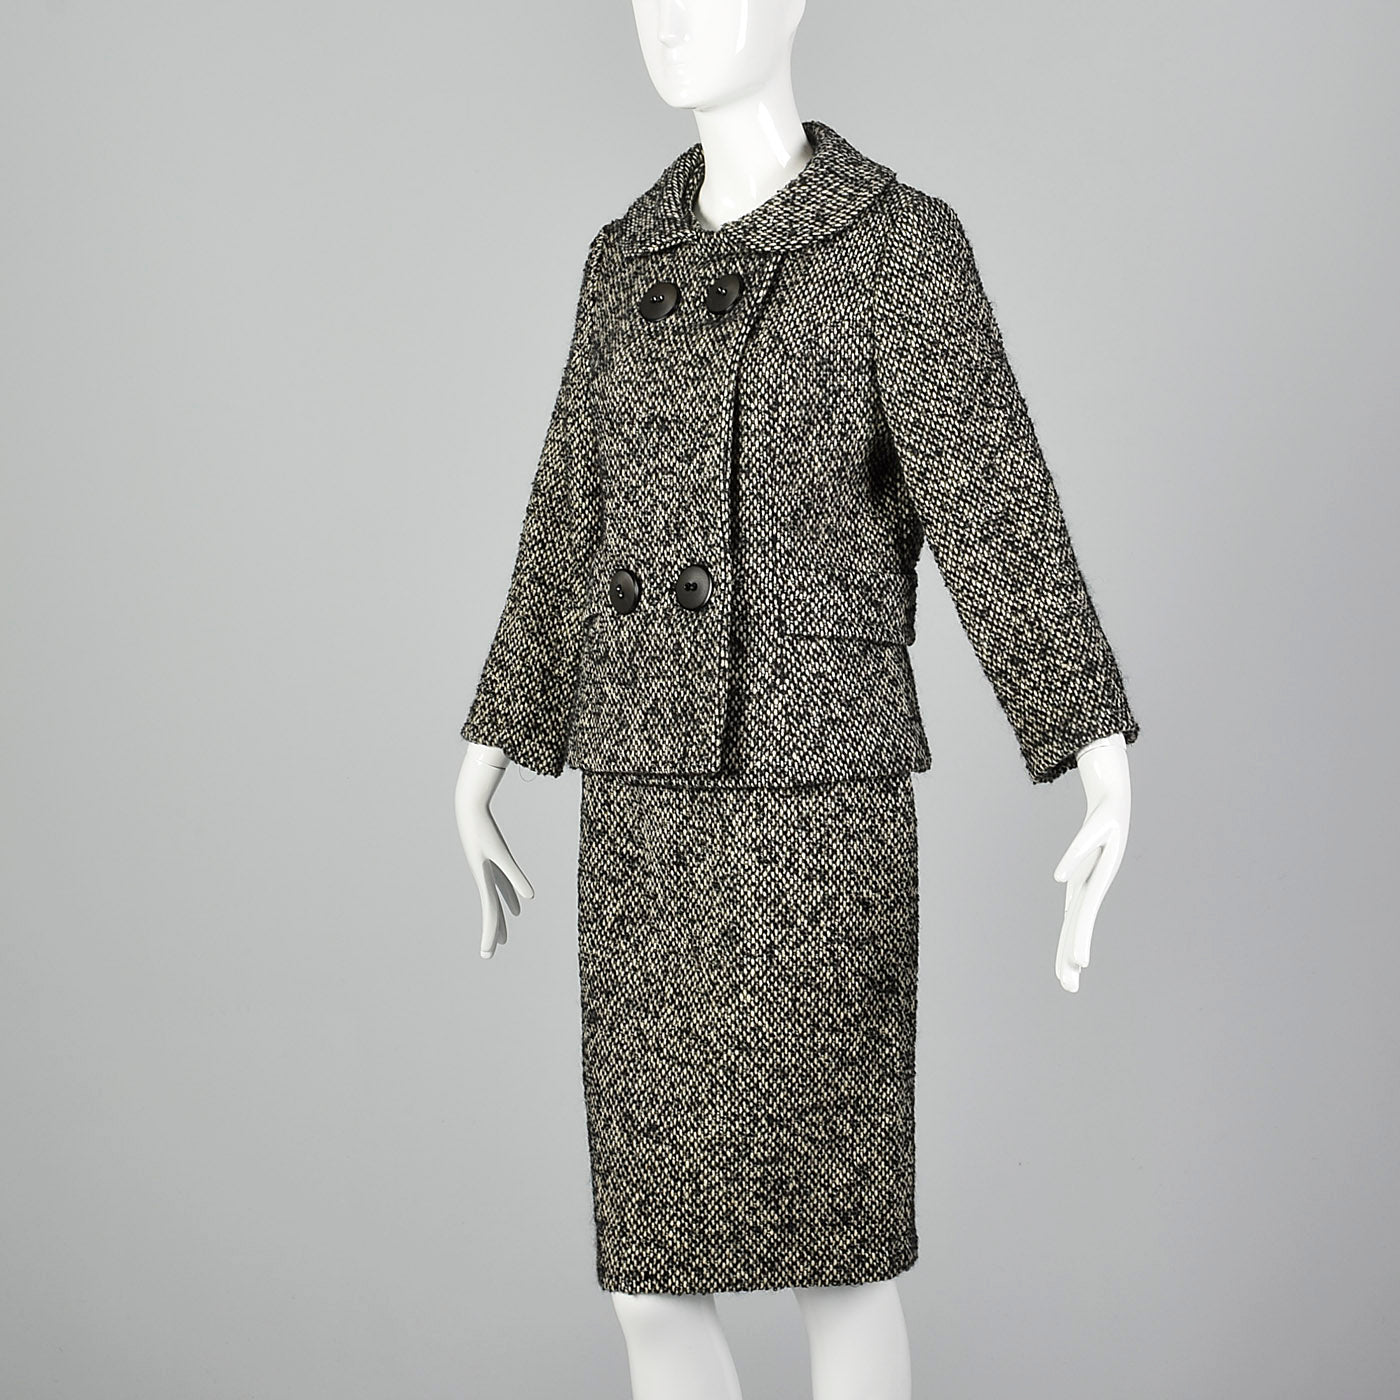 1960s Black and White Boucle Wool Skirt Suit